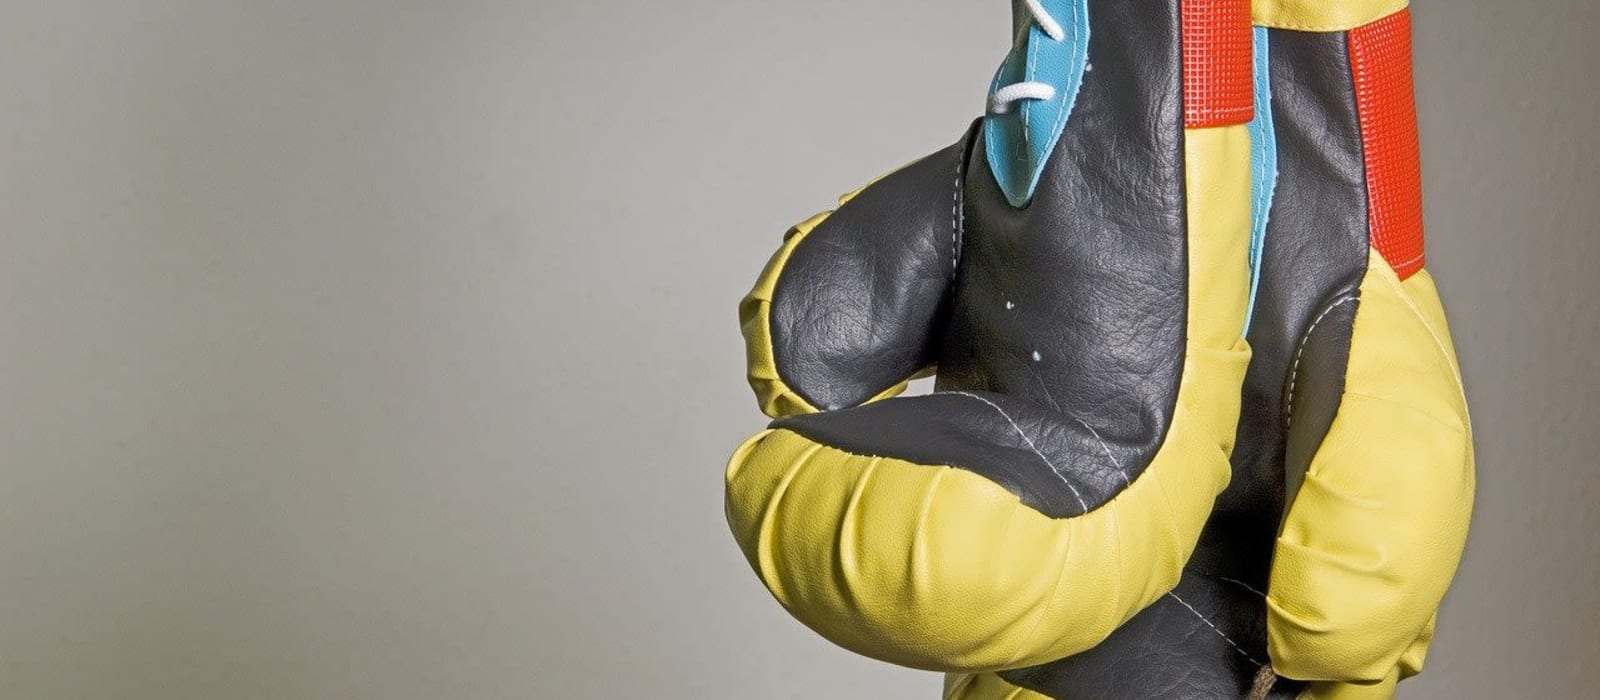 Image shows two yellow and red boxing gloves